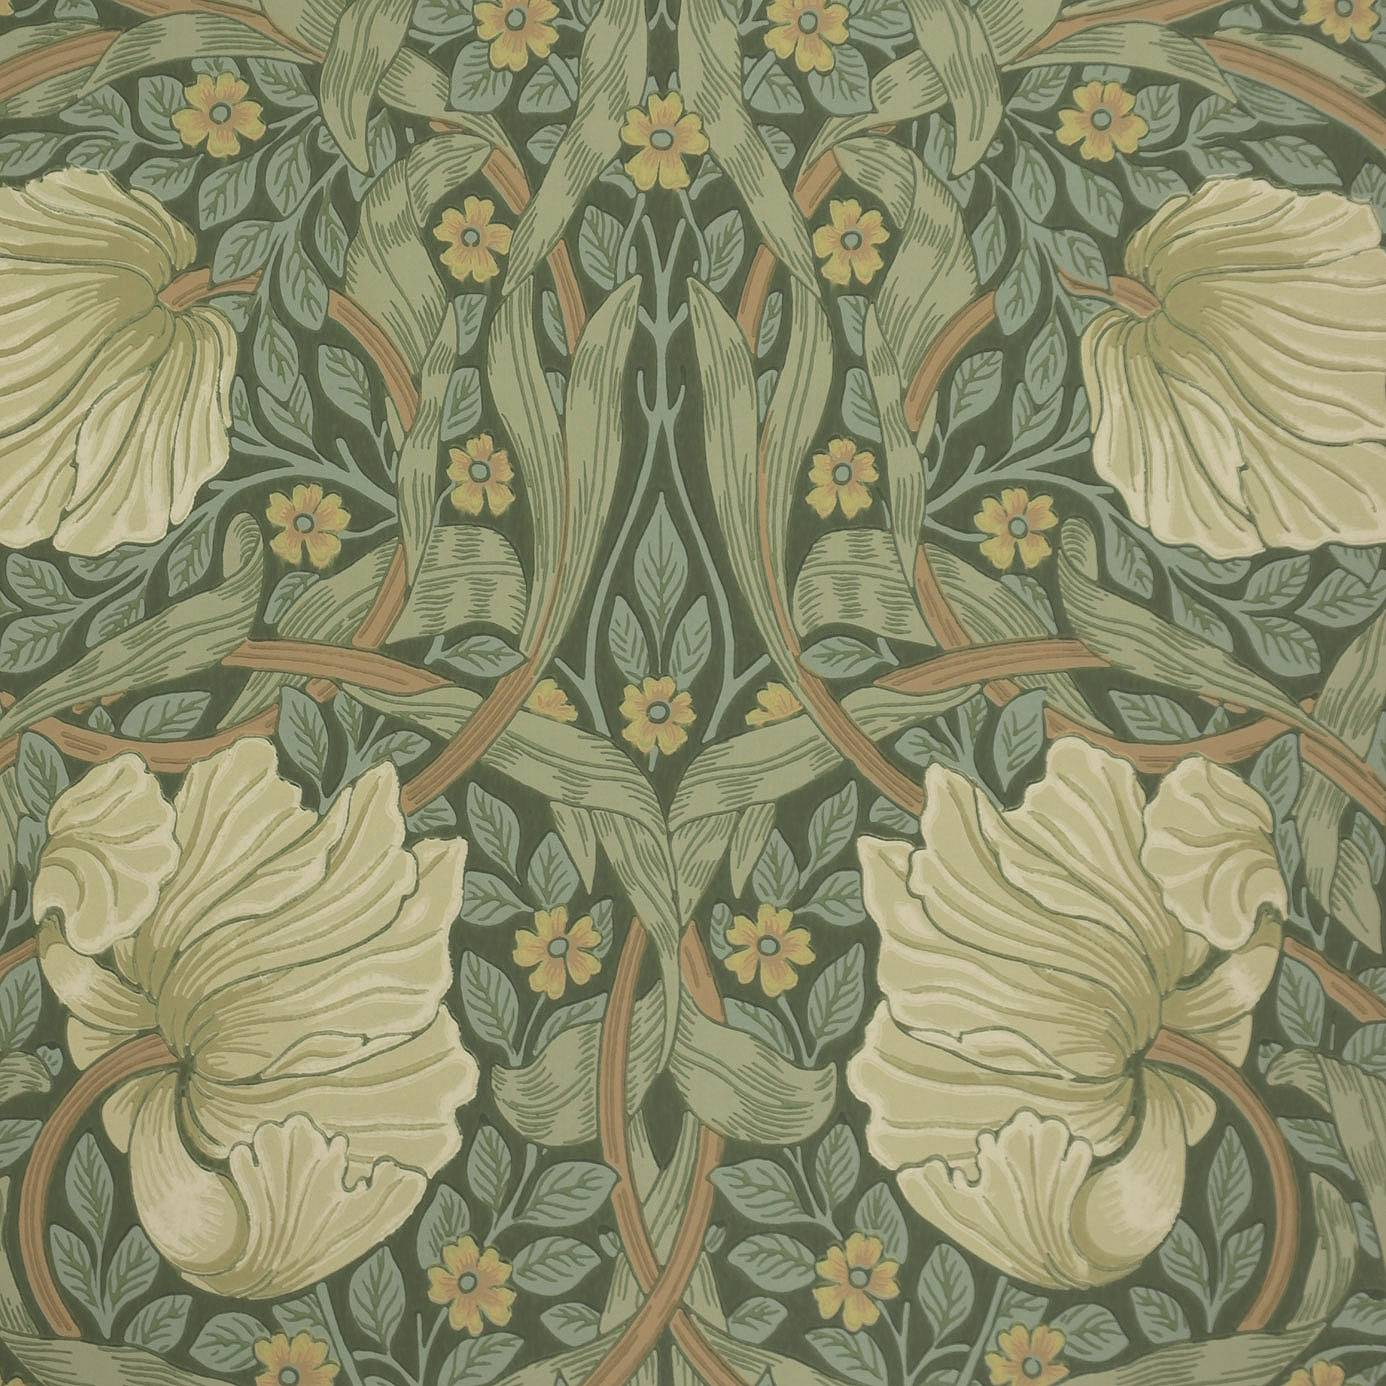 Designers Guild Cushions Uk picture on Designers Guild Cushions Ukmor210389_pimpernel_wallpaper_privet_slate_william_morris_and_co_archive_wallpapers_collection with Designers Guild Cushions Uk, sofa ebcc3793b3579e8b23a8b659327b3d52